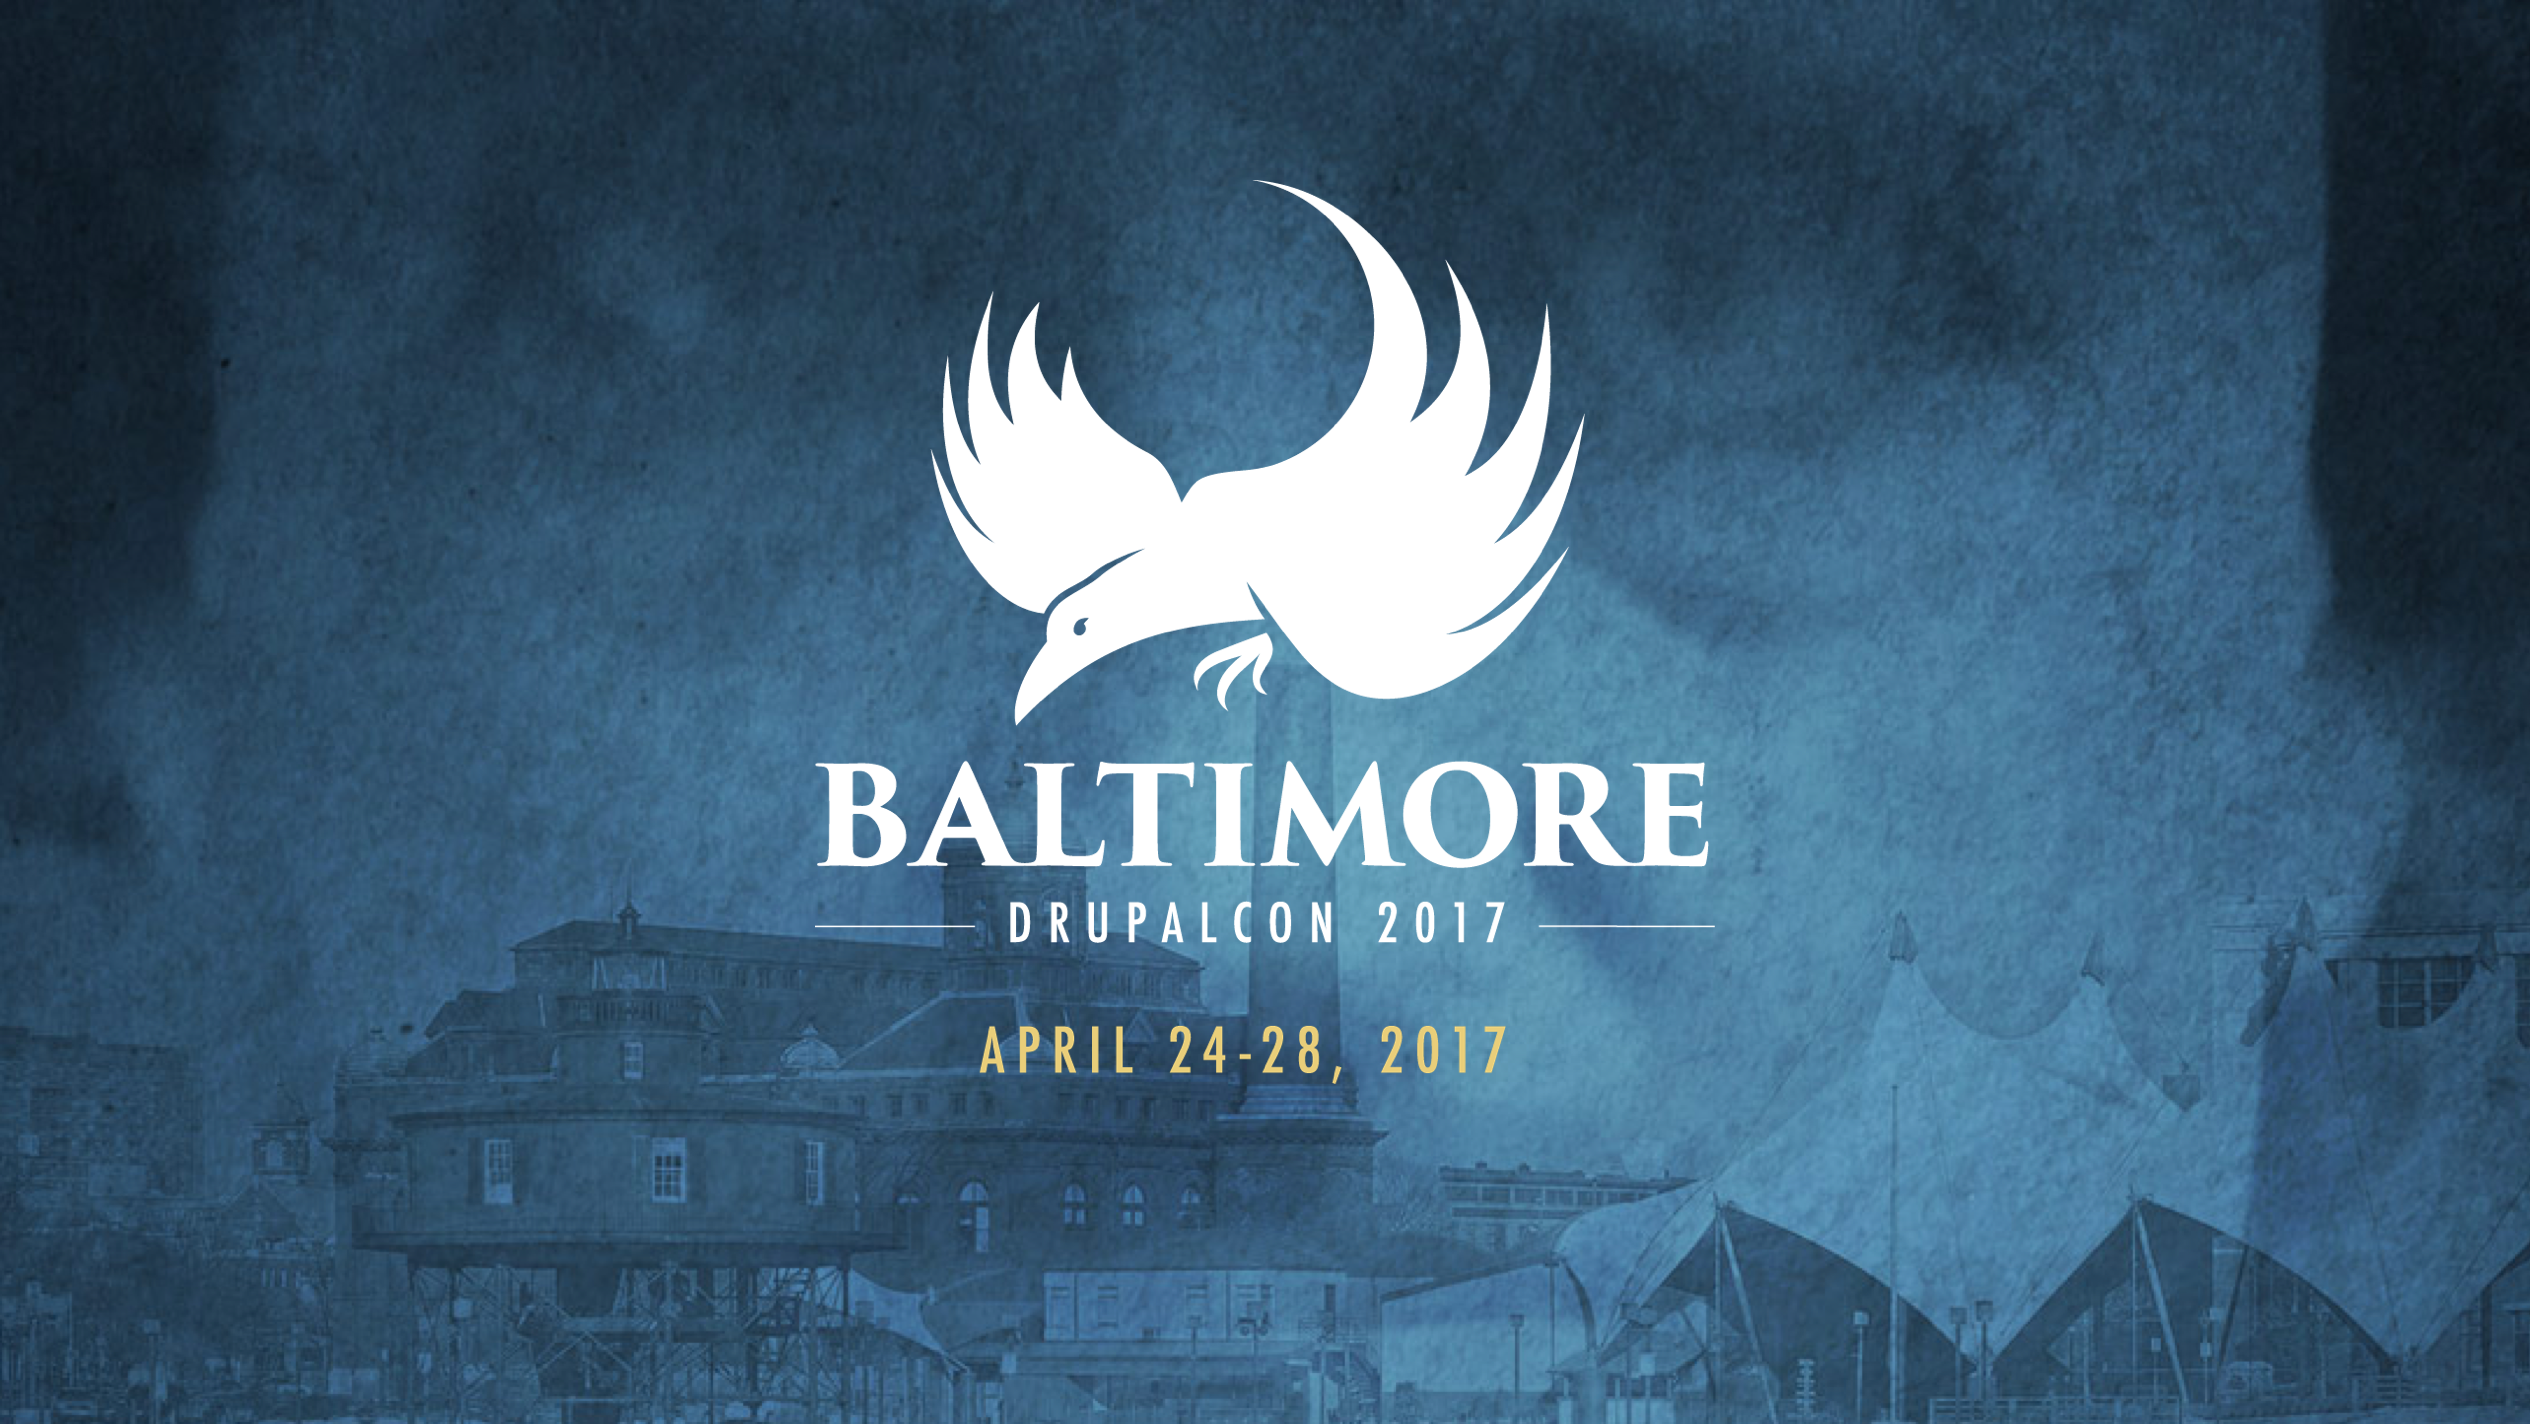 drupalcon baltimore.png